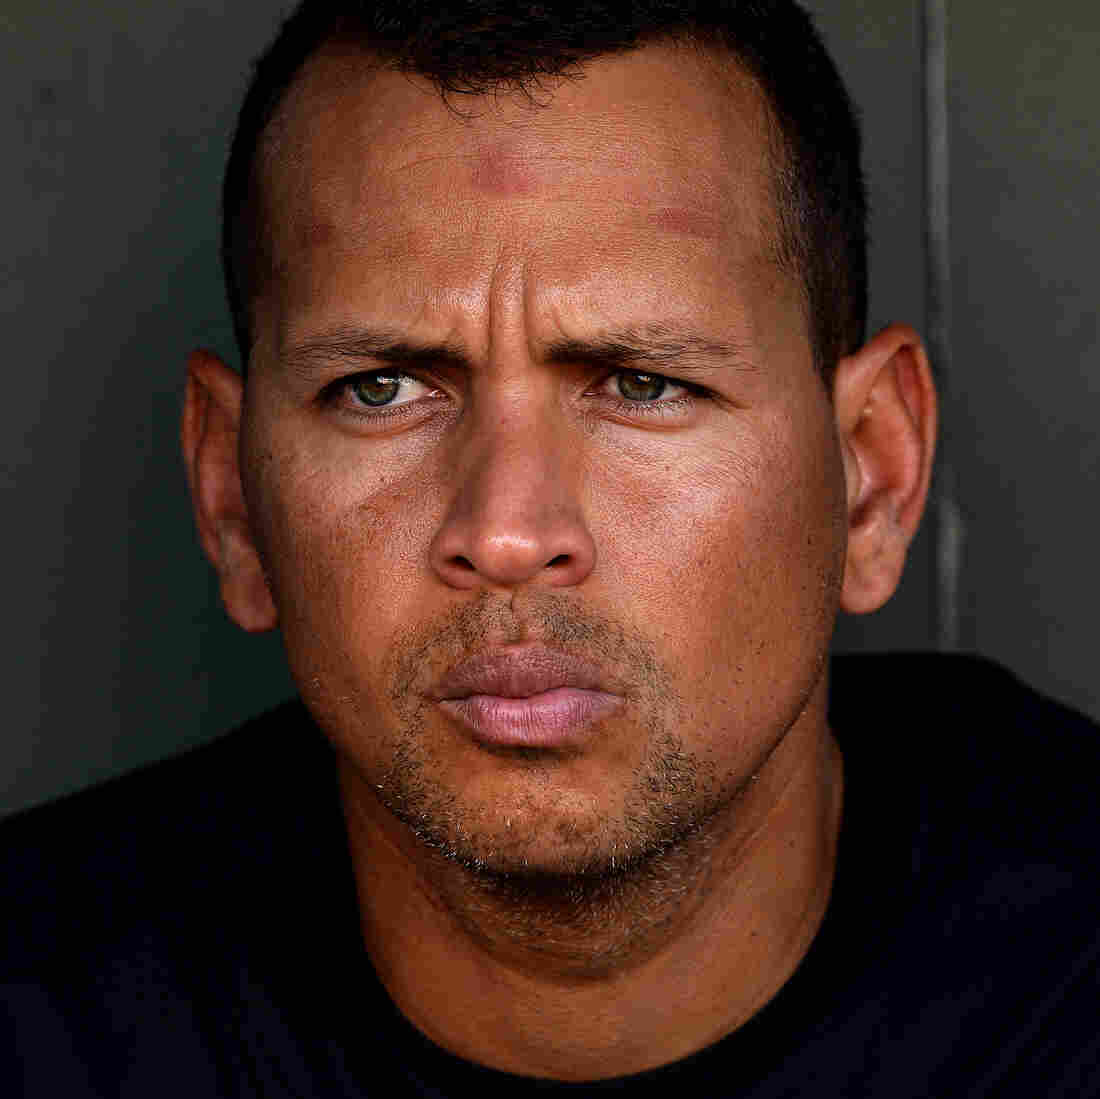 Alex Rodriguez Says 'Sorry' As He Returns From Seasonlong Suspension